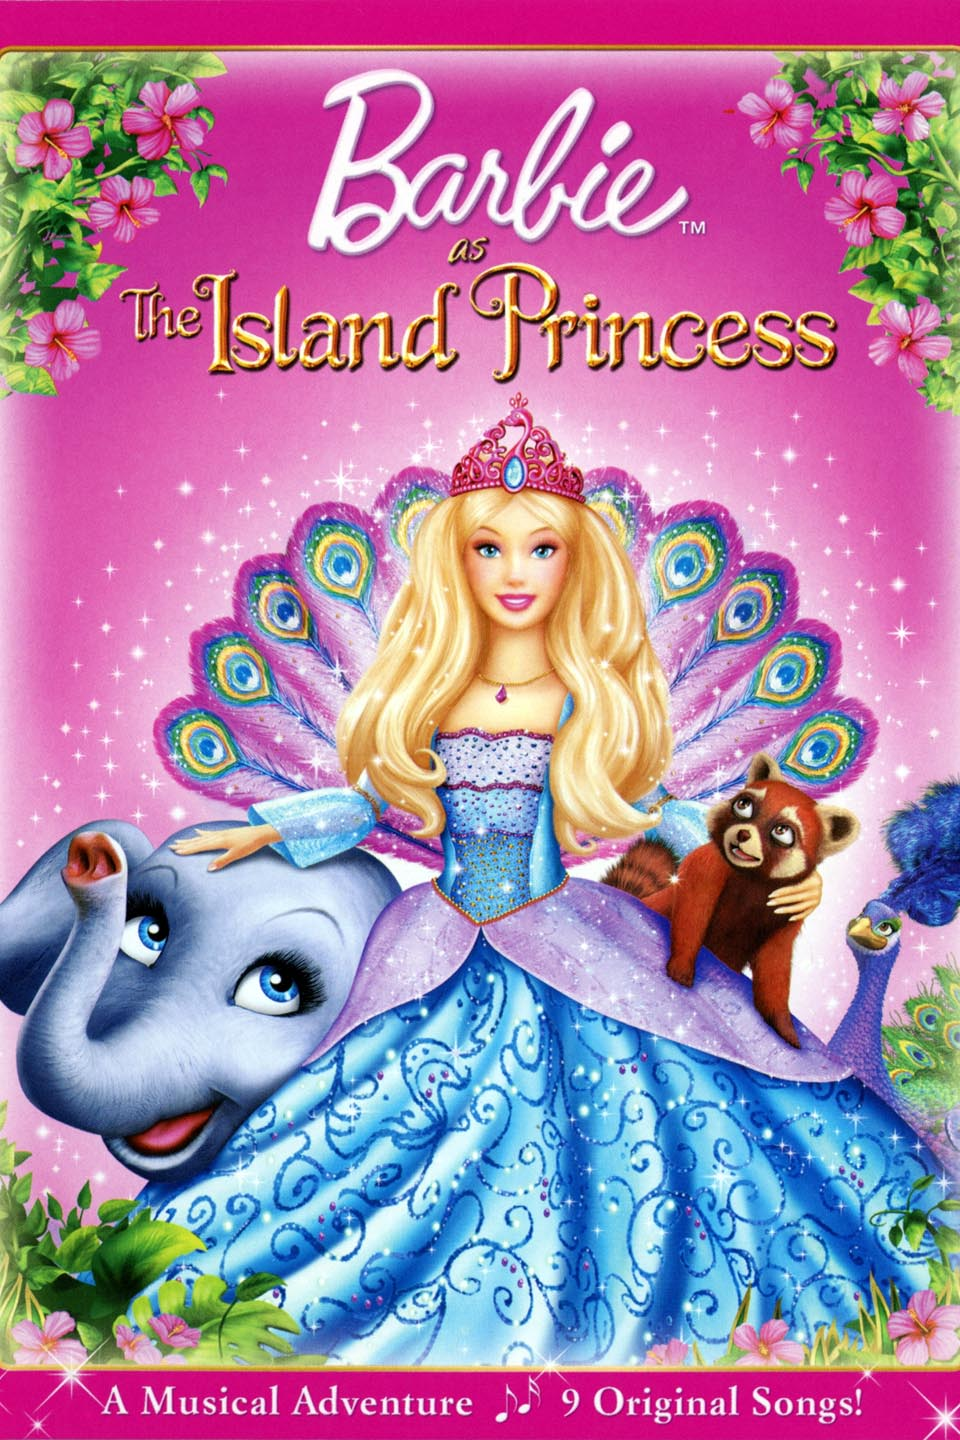 Barbie as the Island Princess-Barbie as the Island Princess